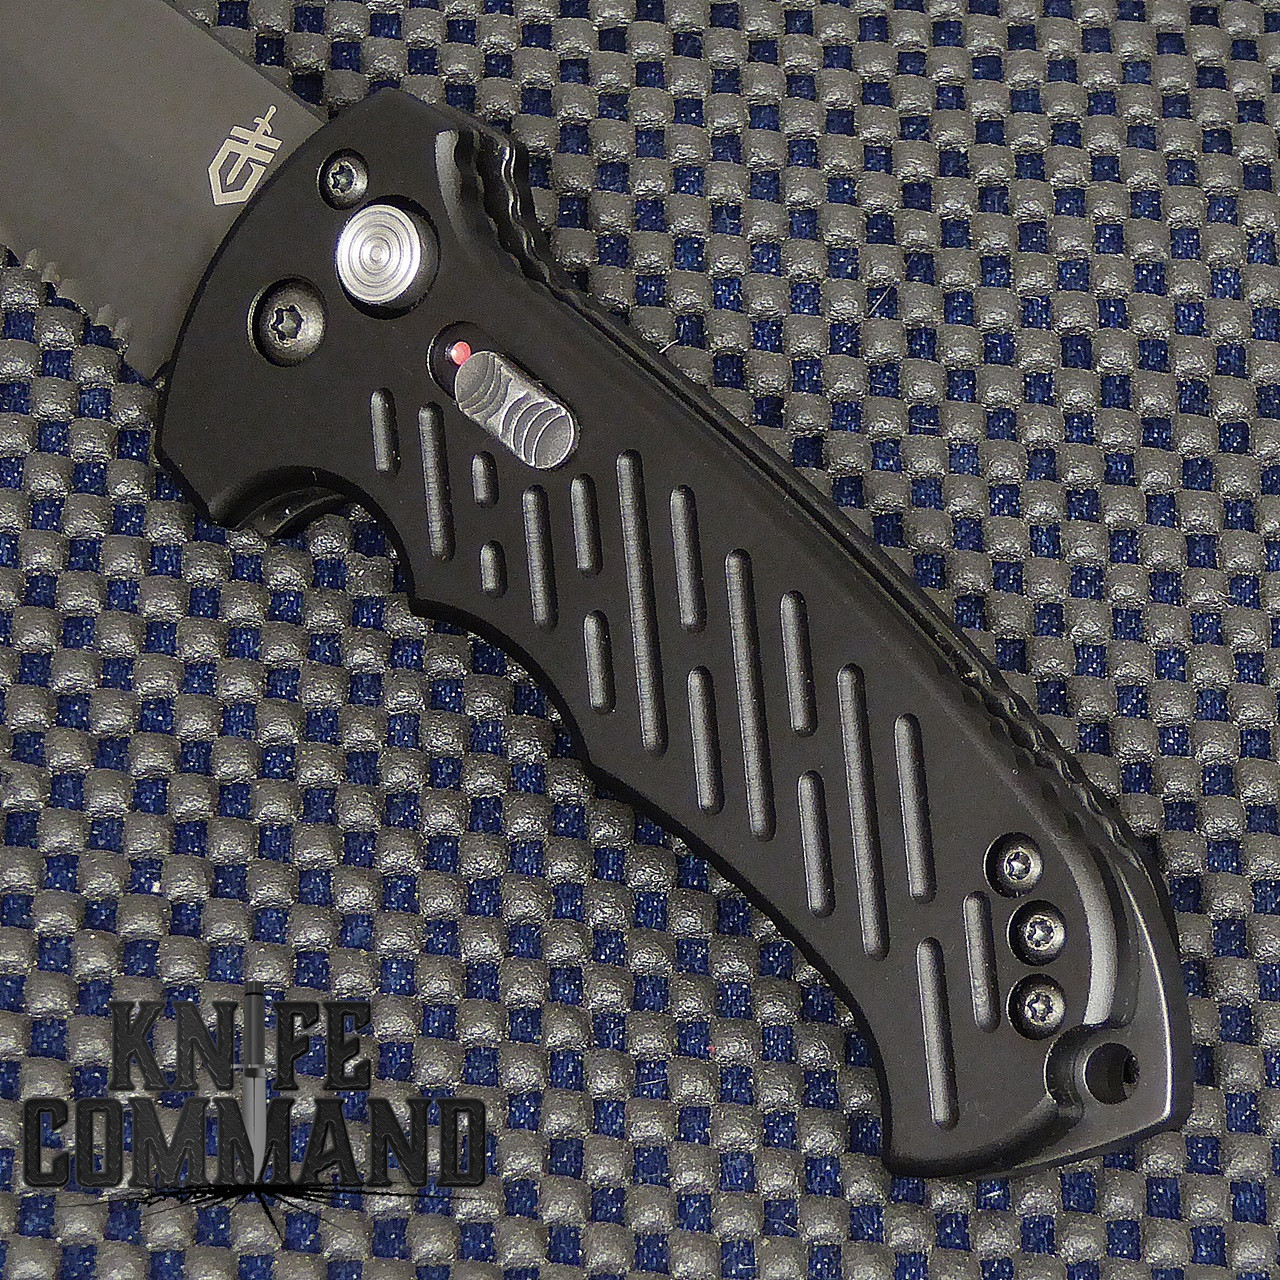 Gerber 06 Auto Tanto Blade Automatic Knife Plain Edge 30-001297.  Extended striking point.